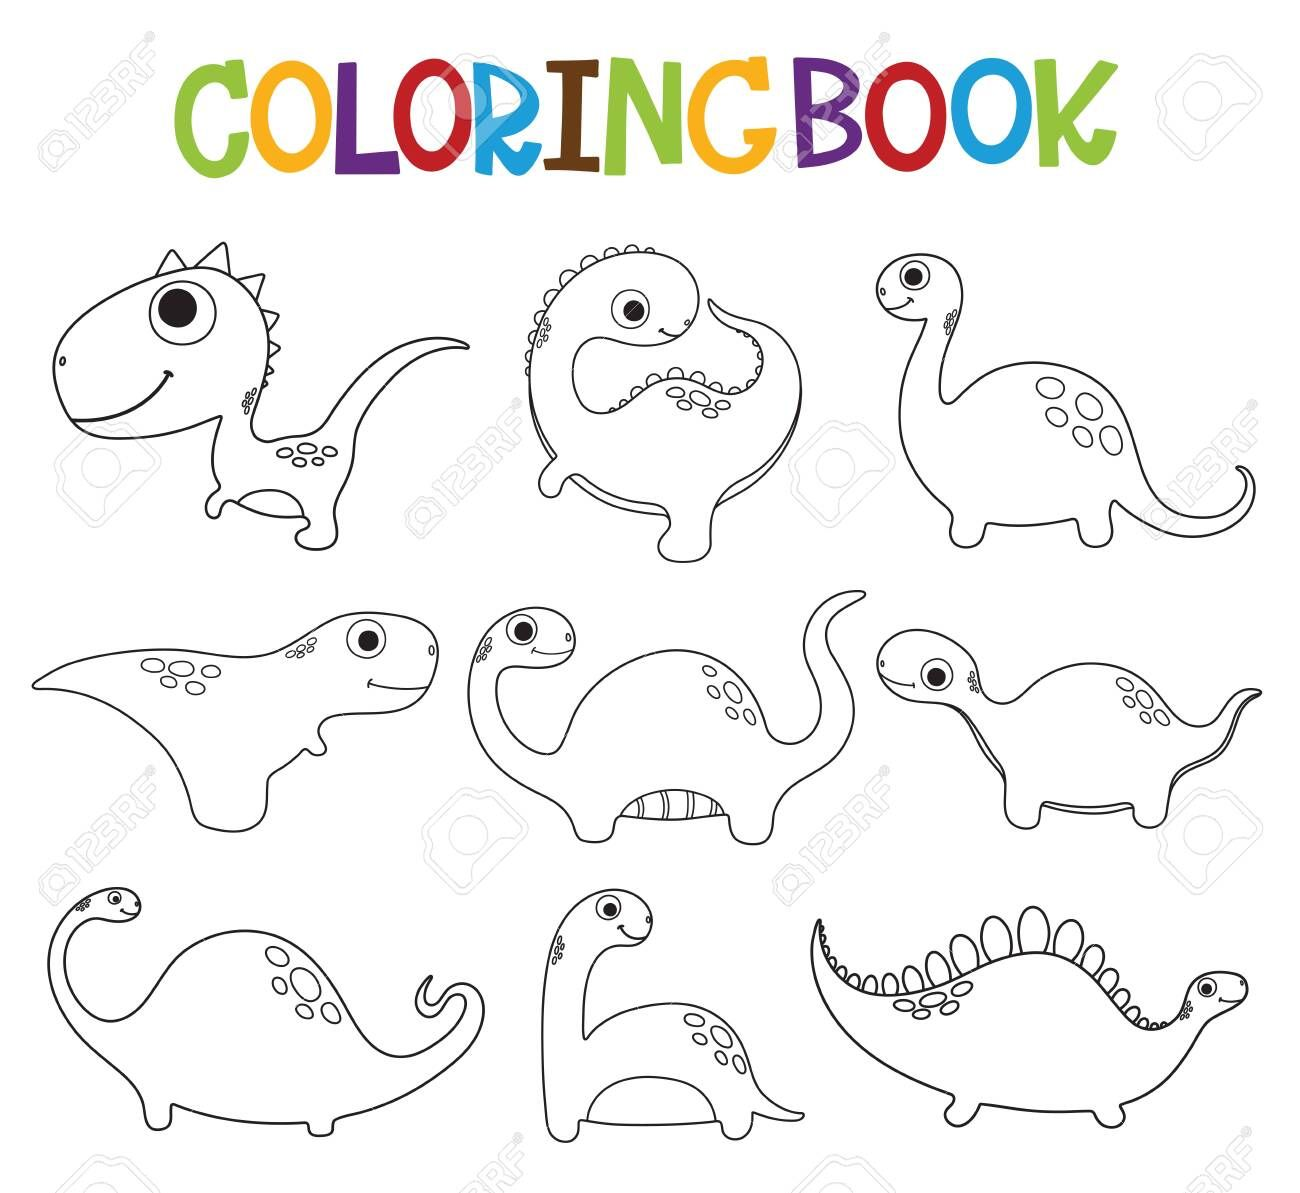 Funny Cartoon Dinosaurs Collection Coloring Book Vector Illustration Ad Dinosaurs Collection Funny Cartoon Vector